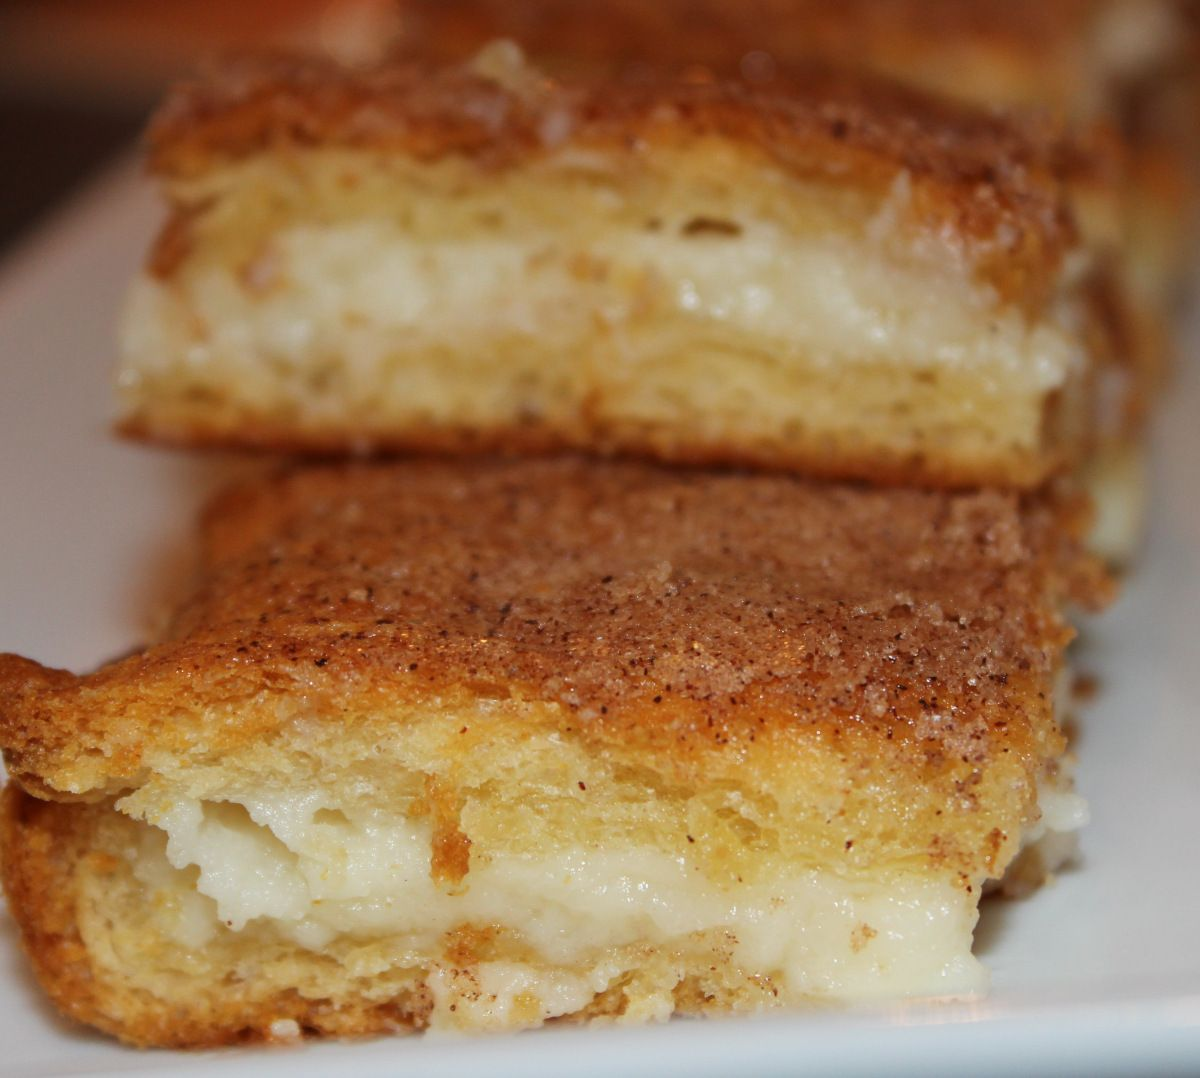 This recipe is, hands-down, the absolute best dessert recipe I have ever come across.  It is very easy, requires few ingredients (most of which are usually already at home), and is a huge hit where...